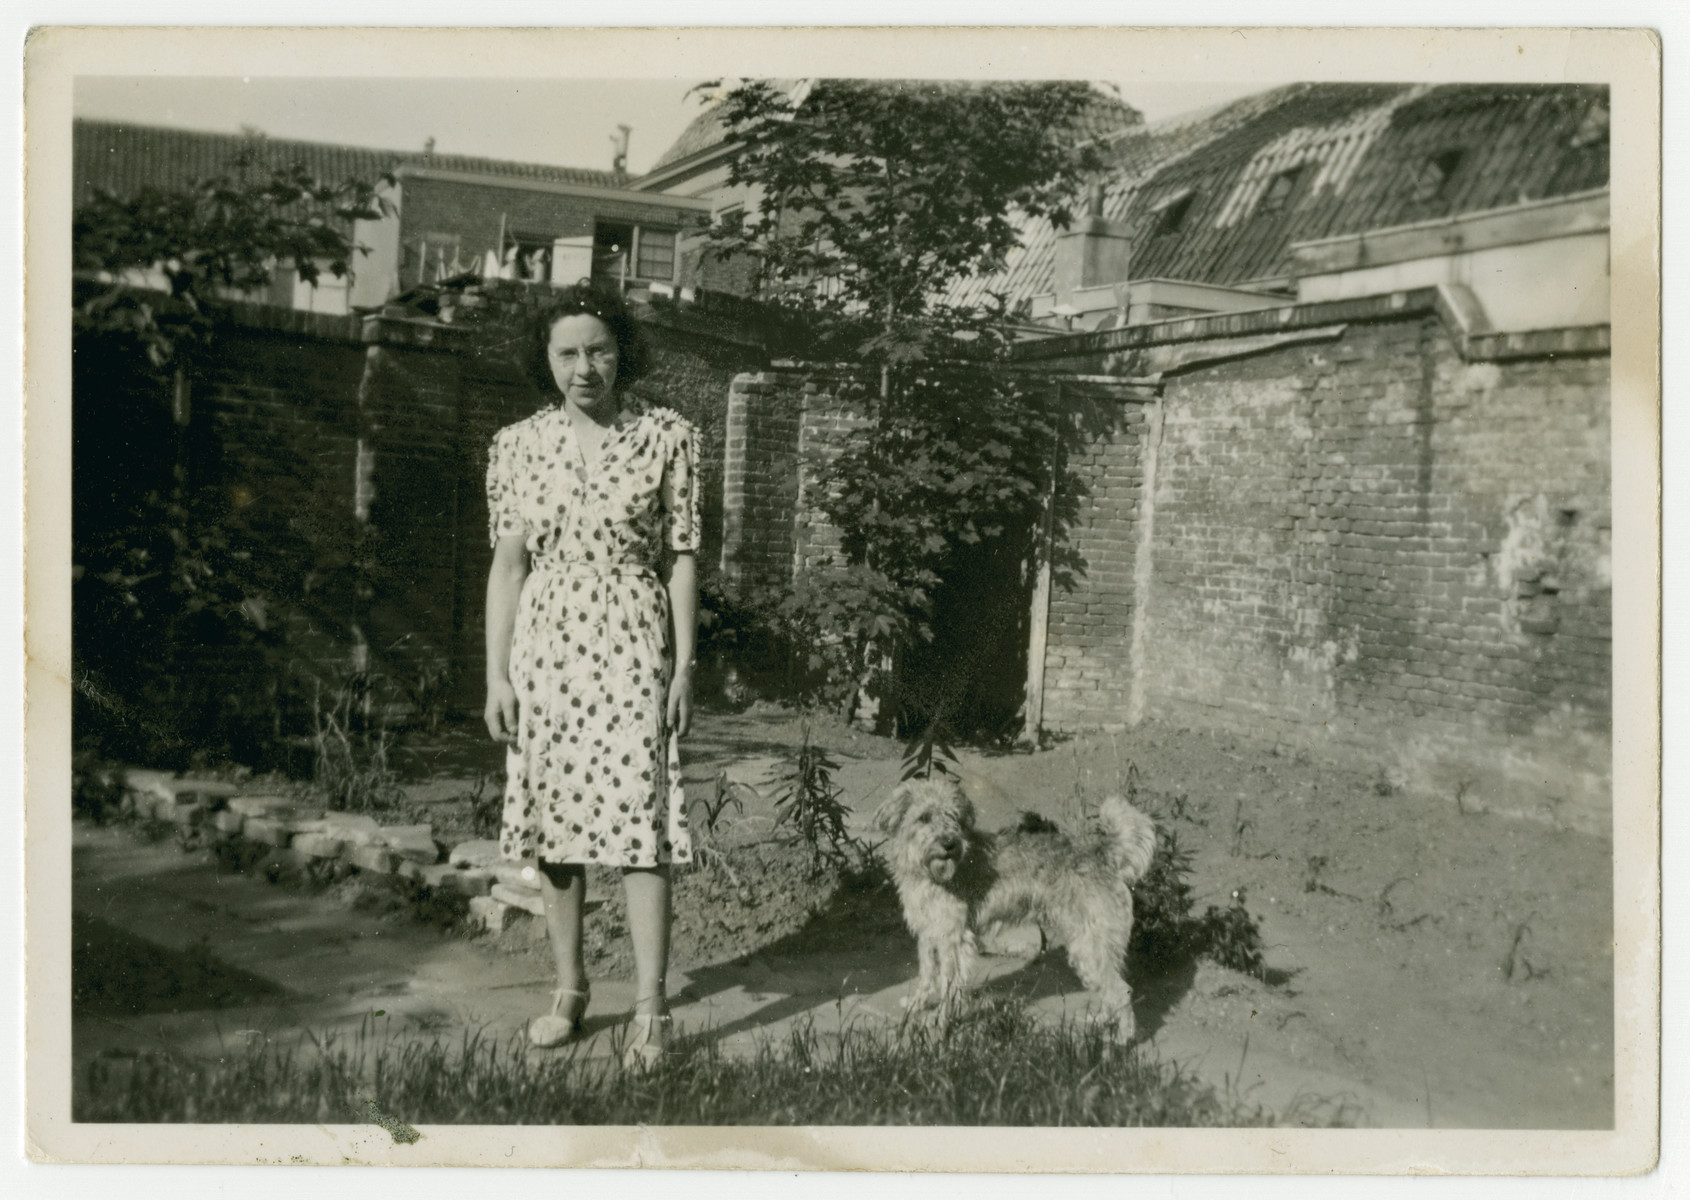 Betty Straus poses with her dog in a garden in Utrecht.